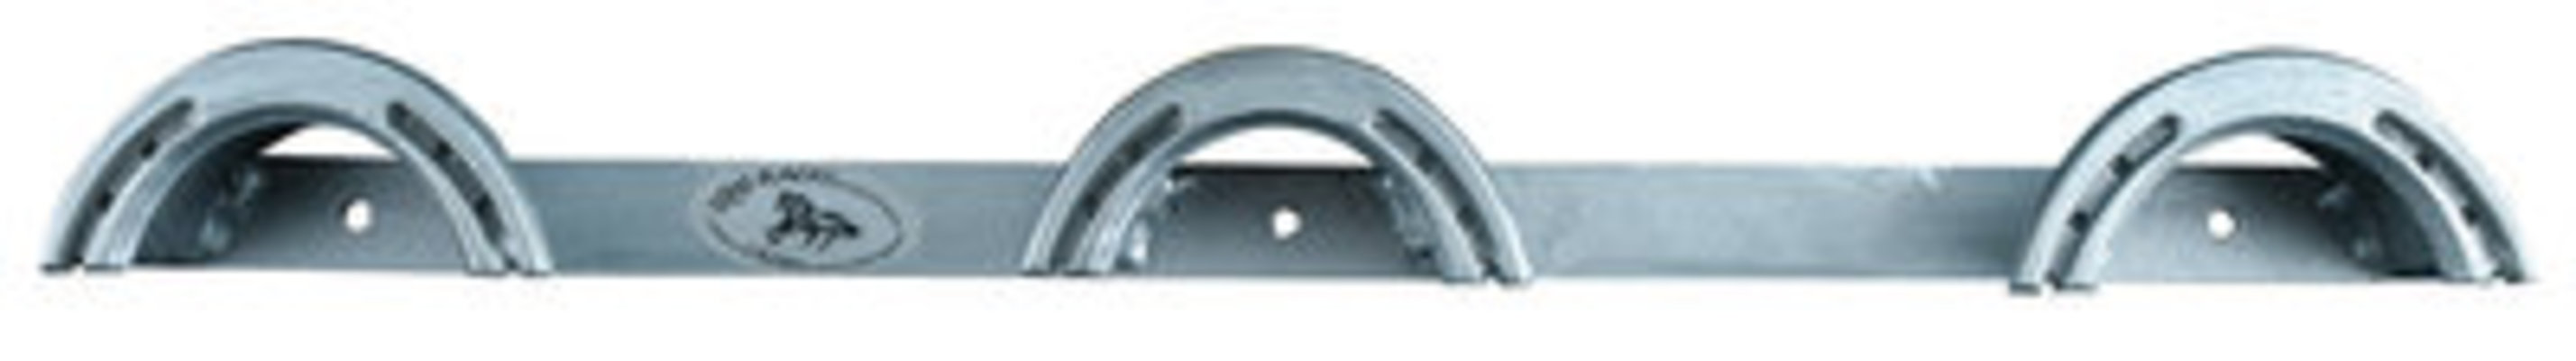 3 Rounded Top Wall Mount Rack, Steel Gray